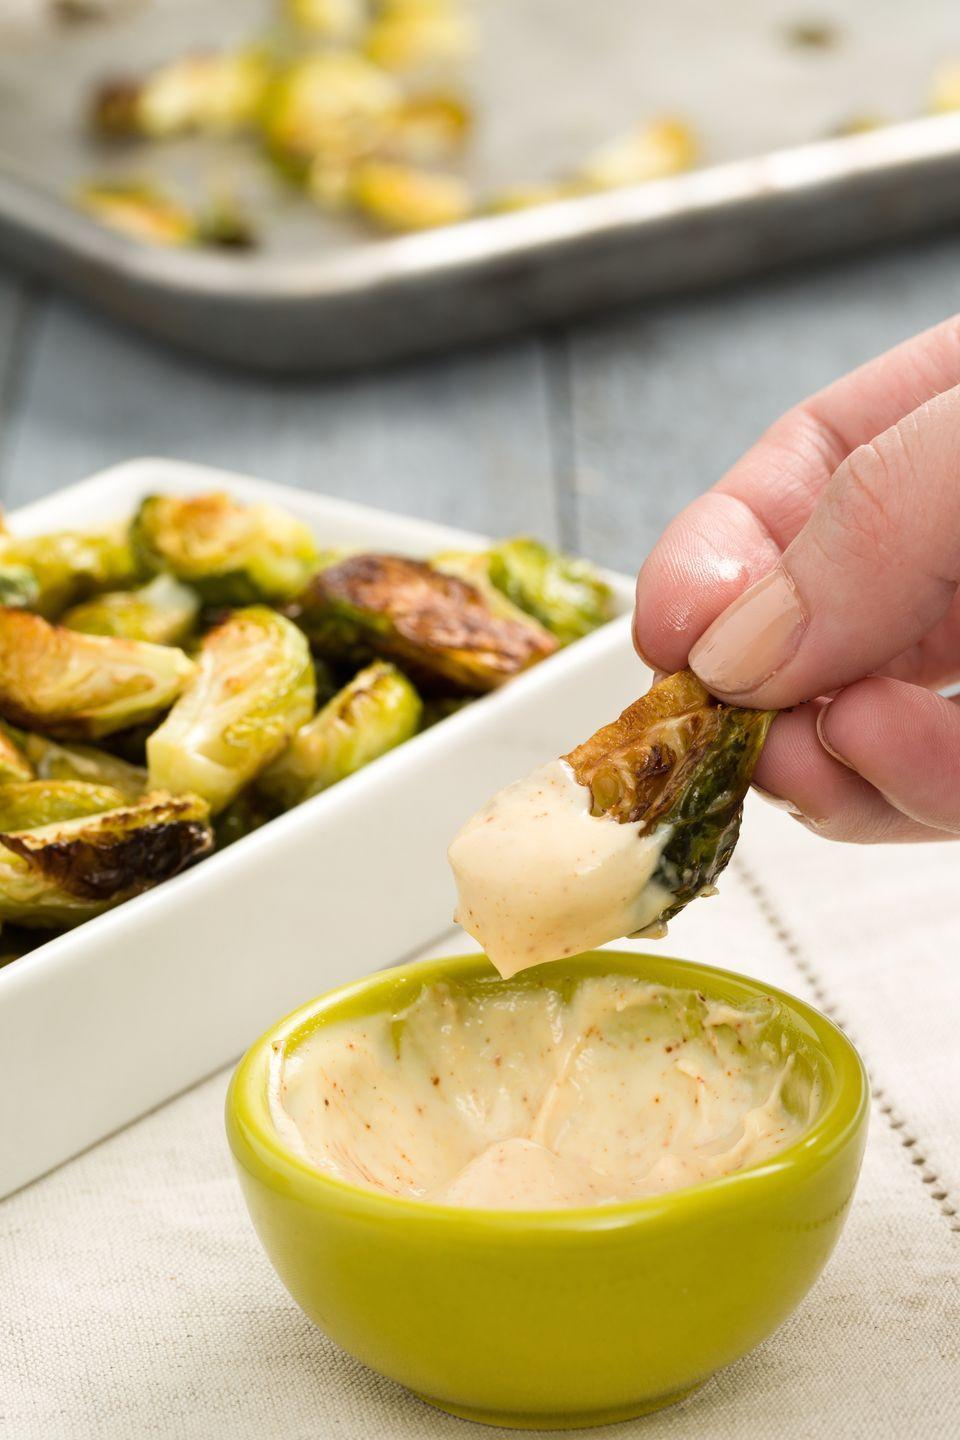 """<p>An appetizer too easy <em>not</em> to make: Roast quartered Brussels sprouts until they're charred and crispy and serve with a three-ingredient aioli. </p><p>Get the recipe from <a href=""""https://www.delish.com/holiday-recipes/thanksgiving/recipes/a44806/crispy-brussels-sprouts-with-spicy-aioli-recipe/"""" rel=""""nofollow noopener"""" target=""""_blank"""" data-ylk=""""slk:Delish"""" class=""""link rapid-noclick-resp"""">Delish</a>. </p>"""